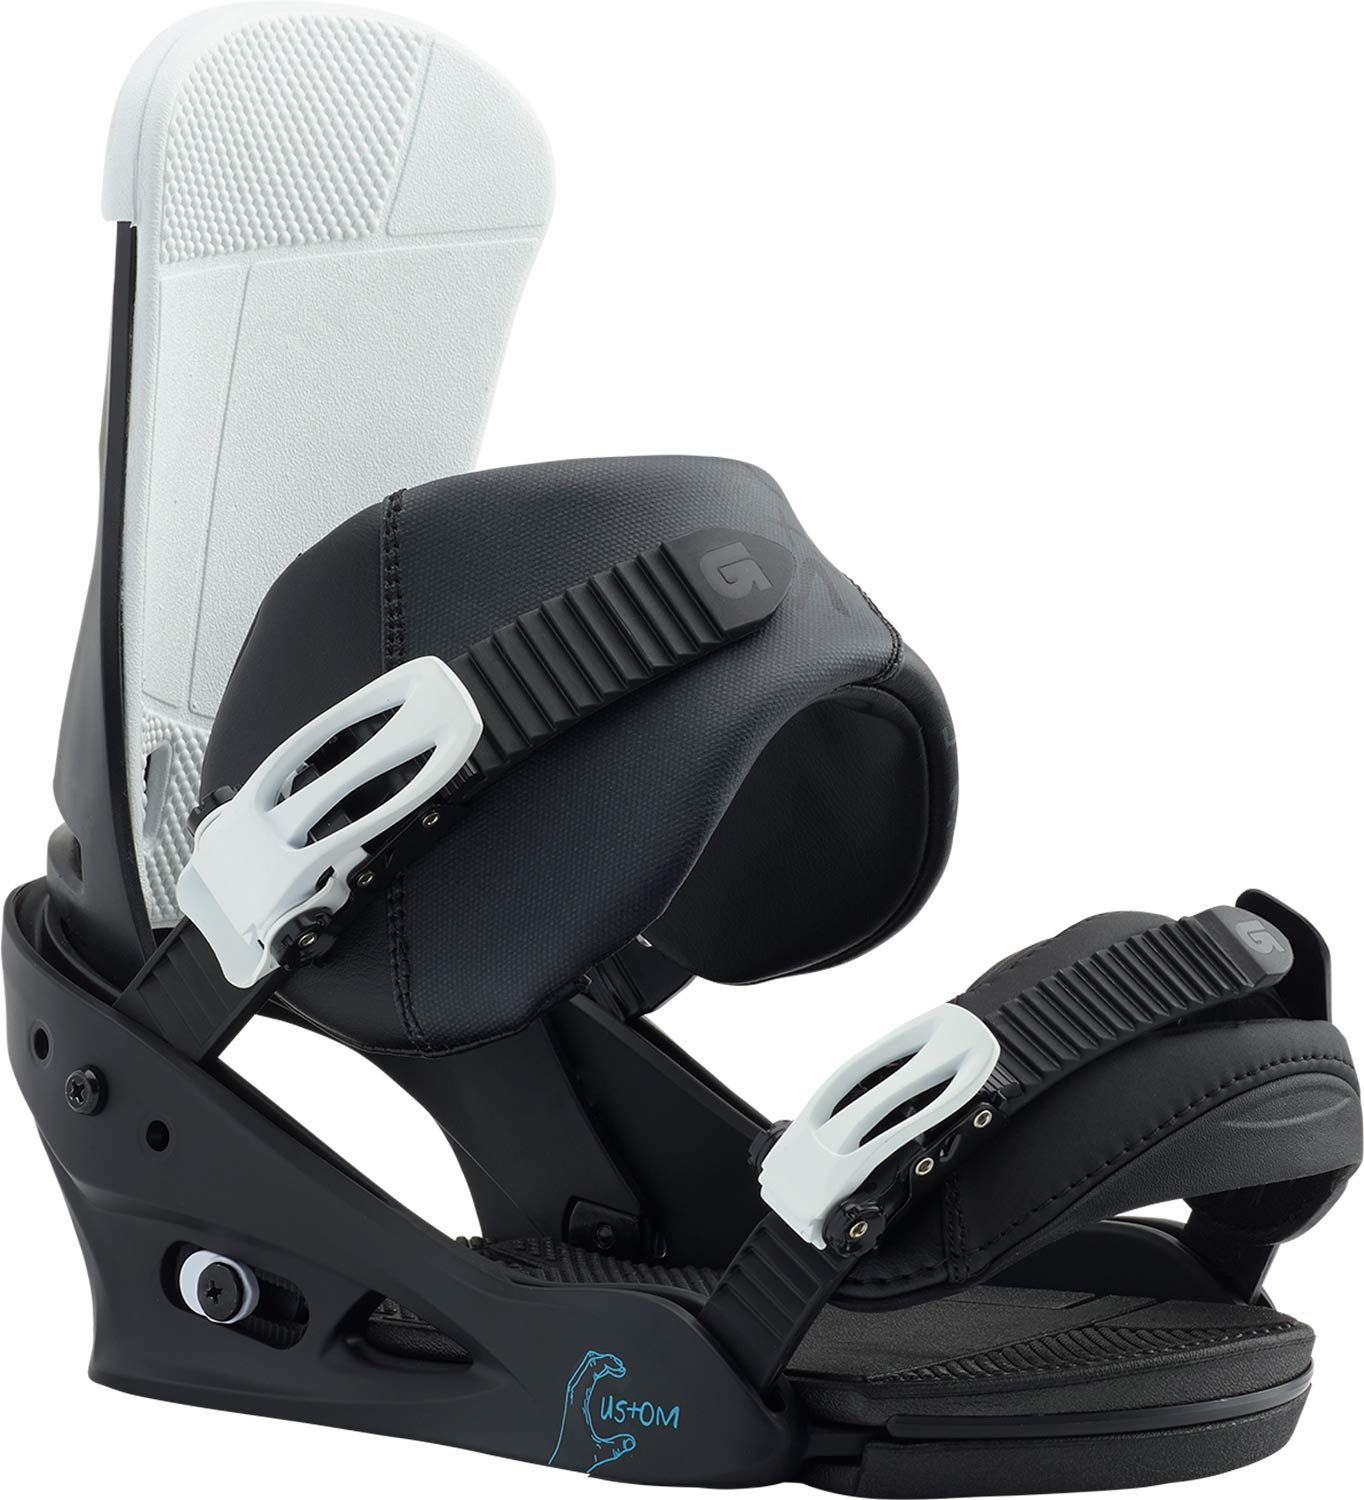 Burton Custom Snowboard Bindings Black/Multi Sz M (8-11)